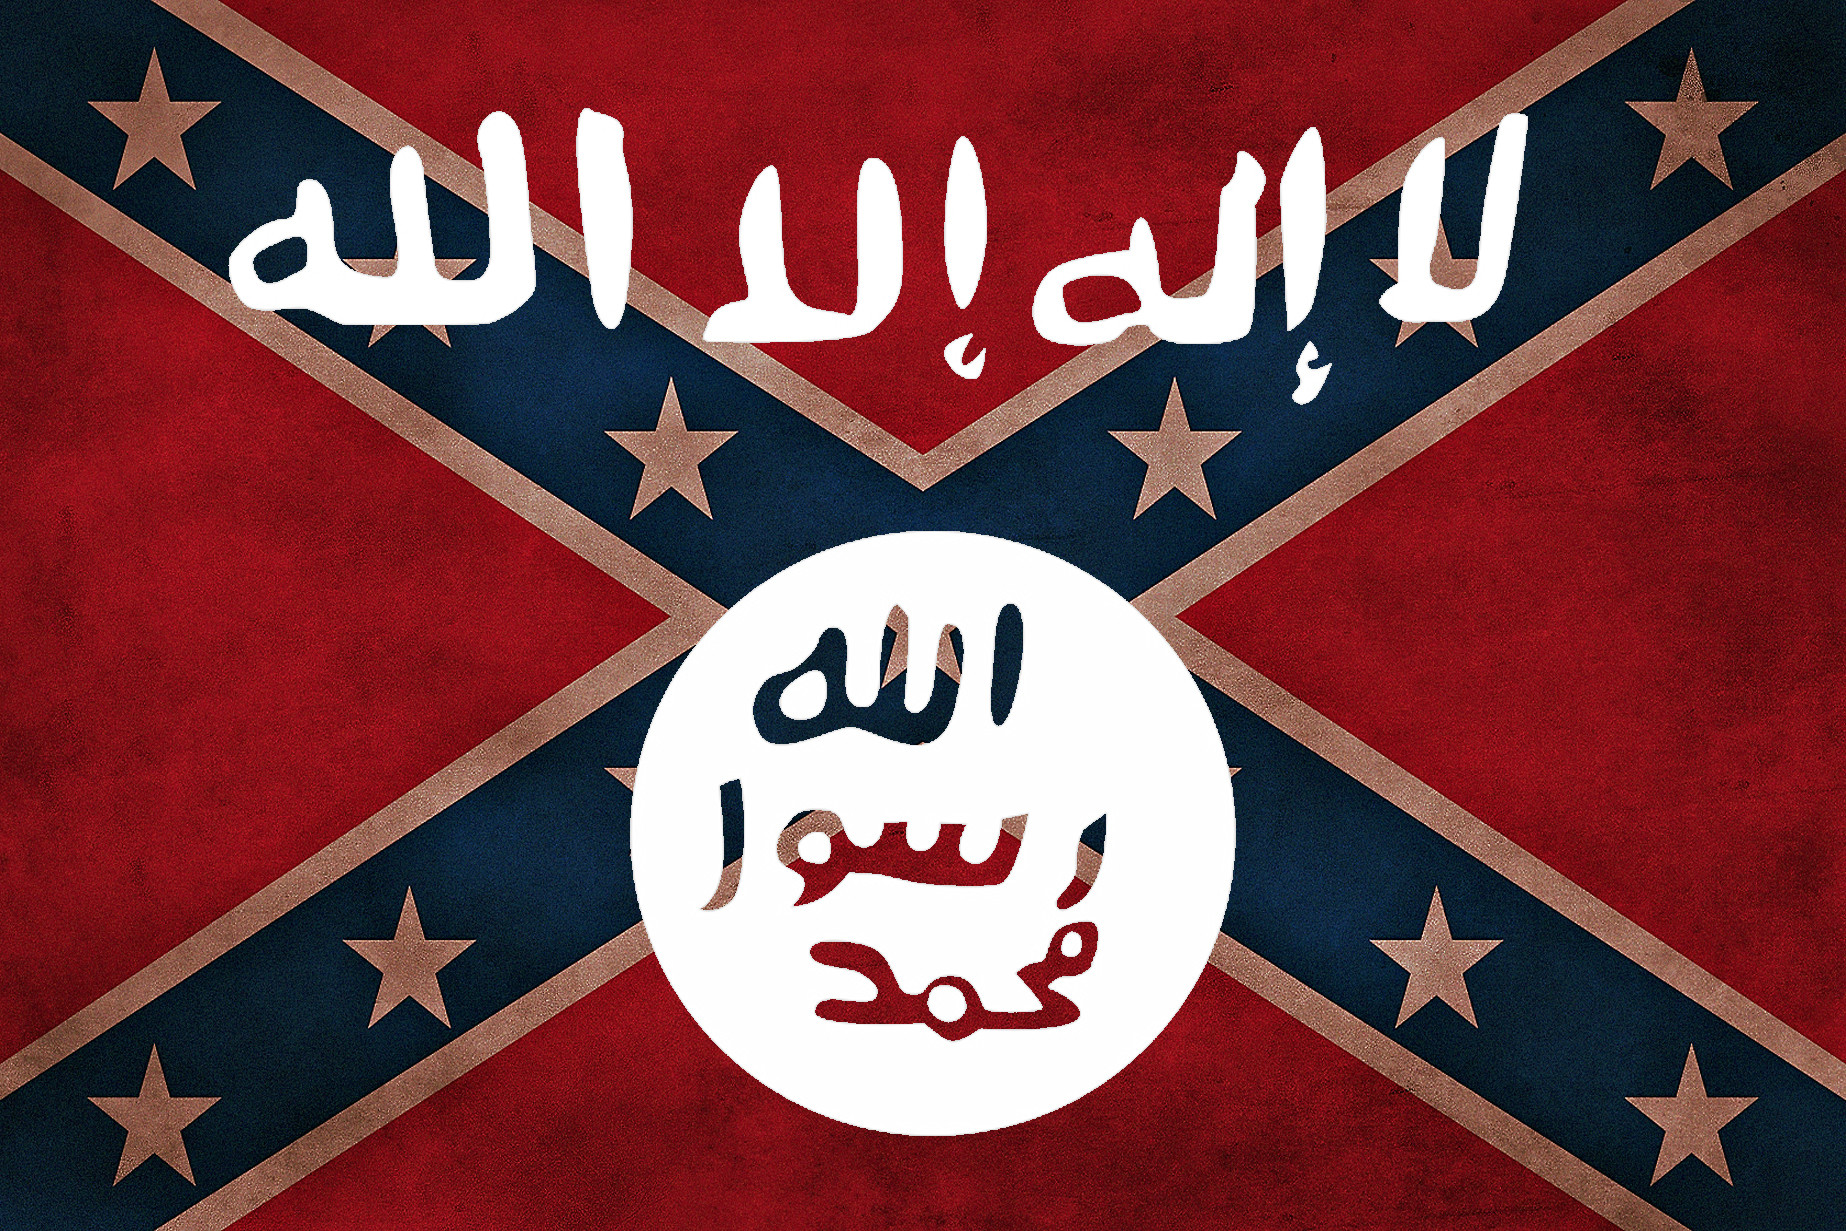 ISIS Confederate flag.   Hate groups are sadly interchangeable.